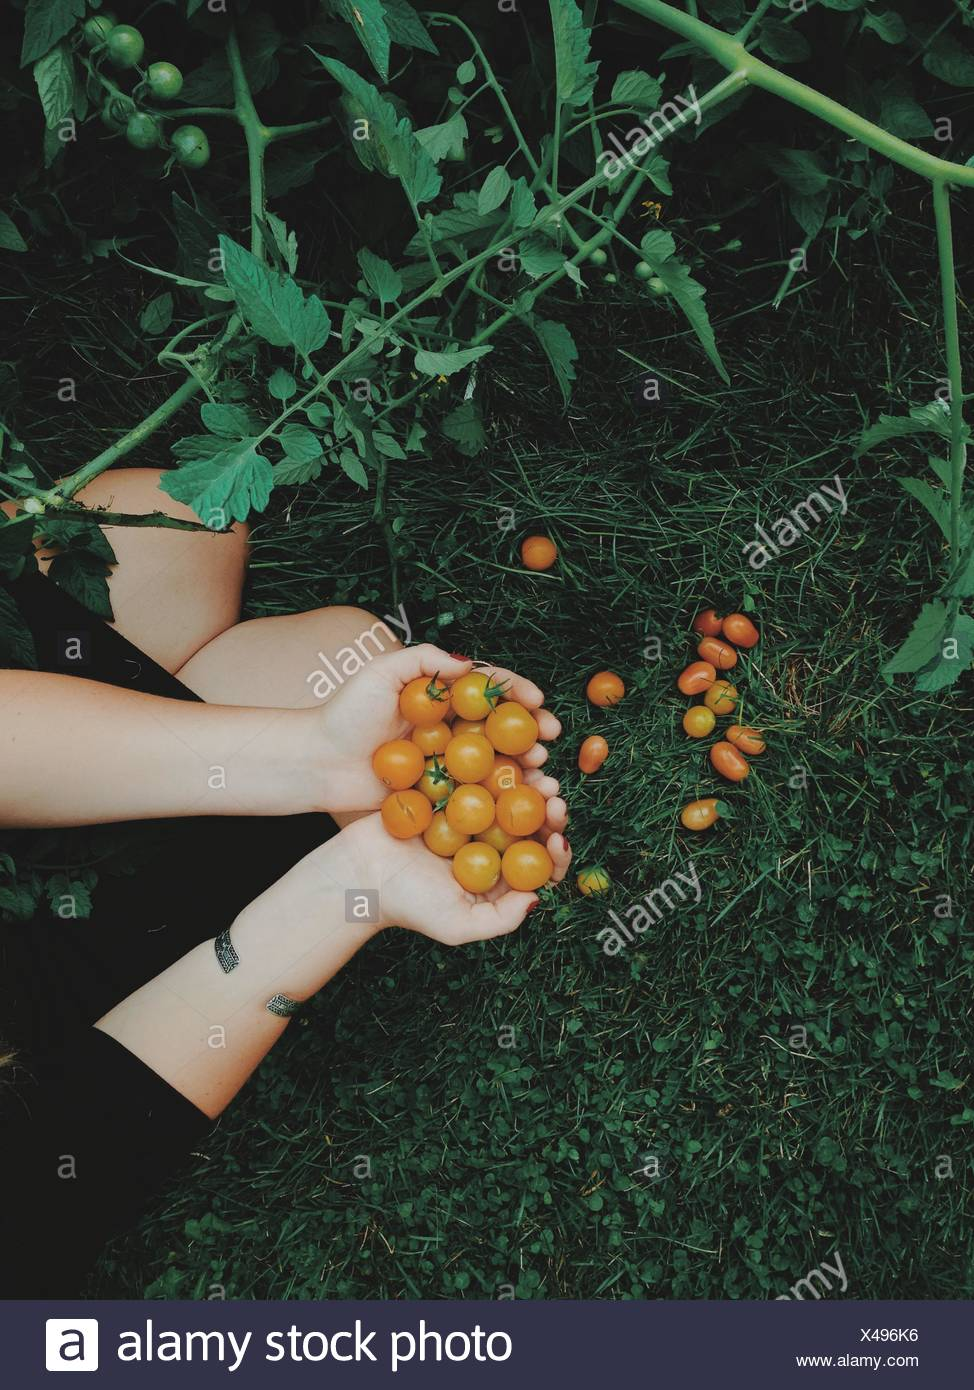 Overhead view of woman holding freshly picked tomatoes - Stock Image